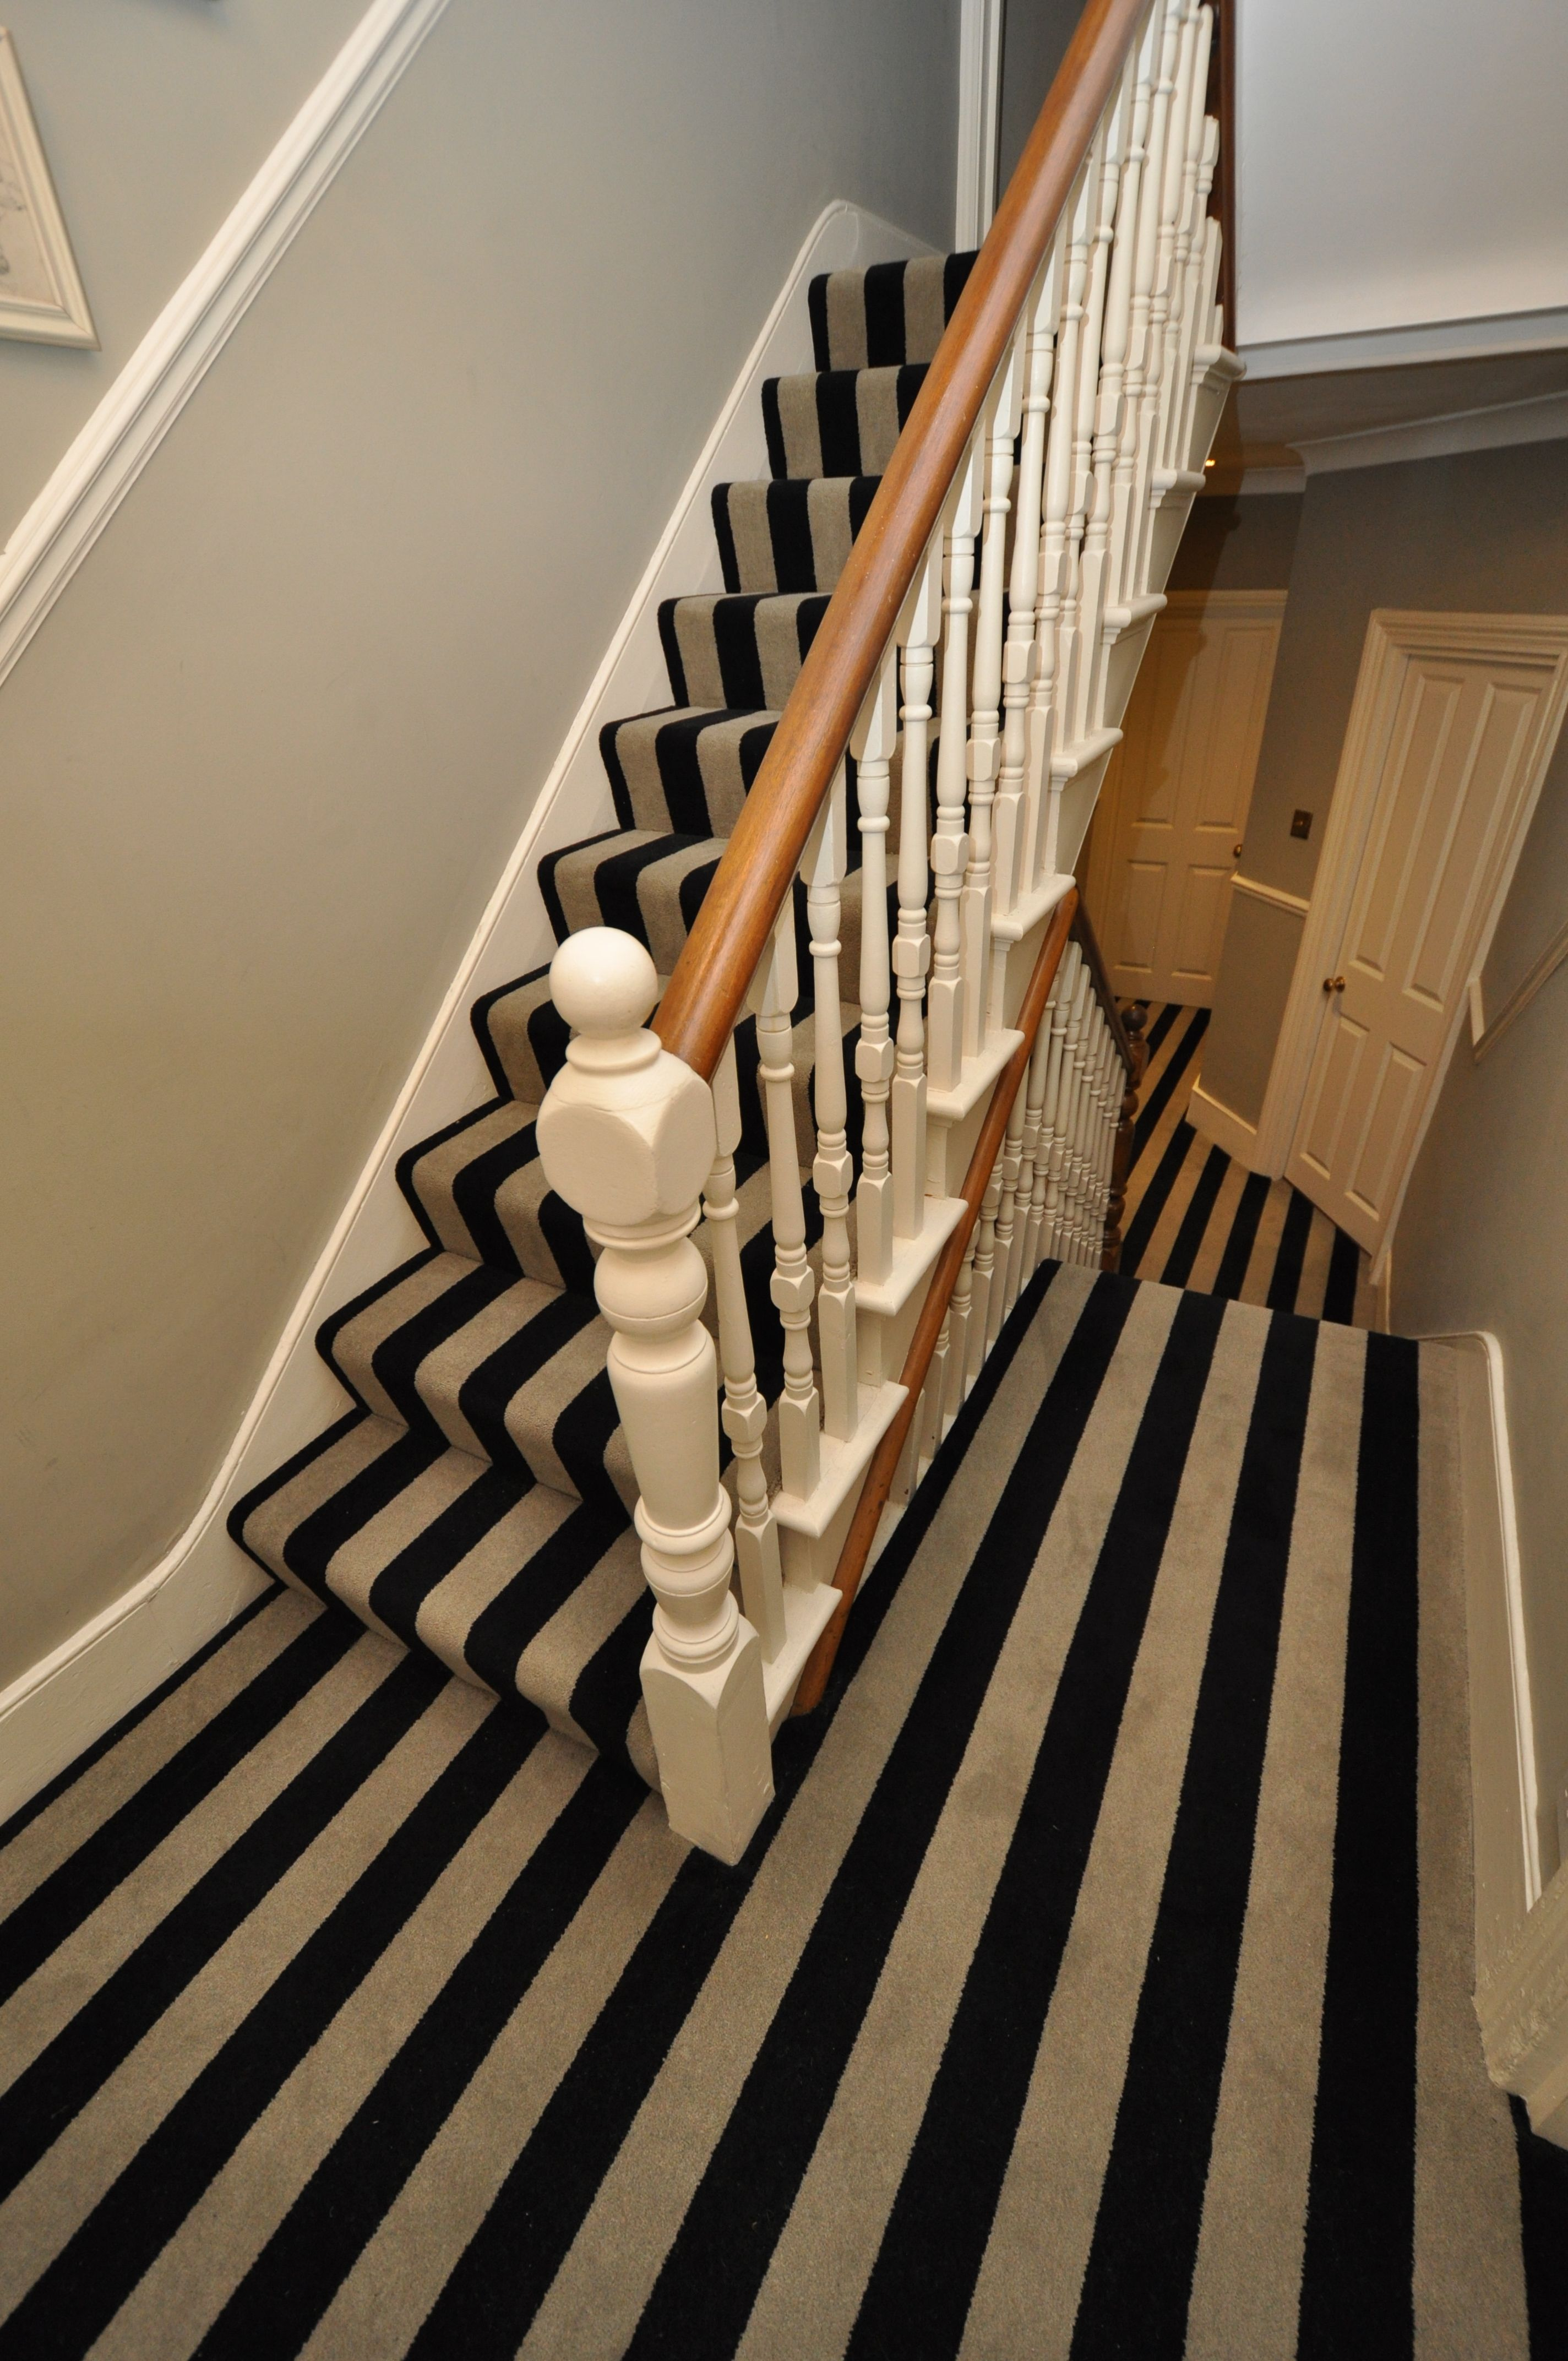 5 003 Bespoke Carpet Bespoke Striped Carpet Stair Runners With Fully Fitted Landings Fitted In London Carpet Stairs Stair Runner Carpet Stairs